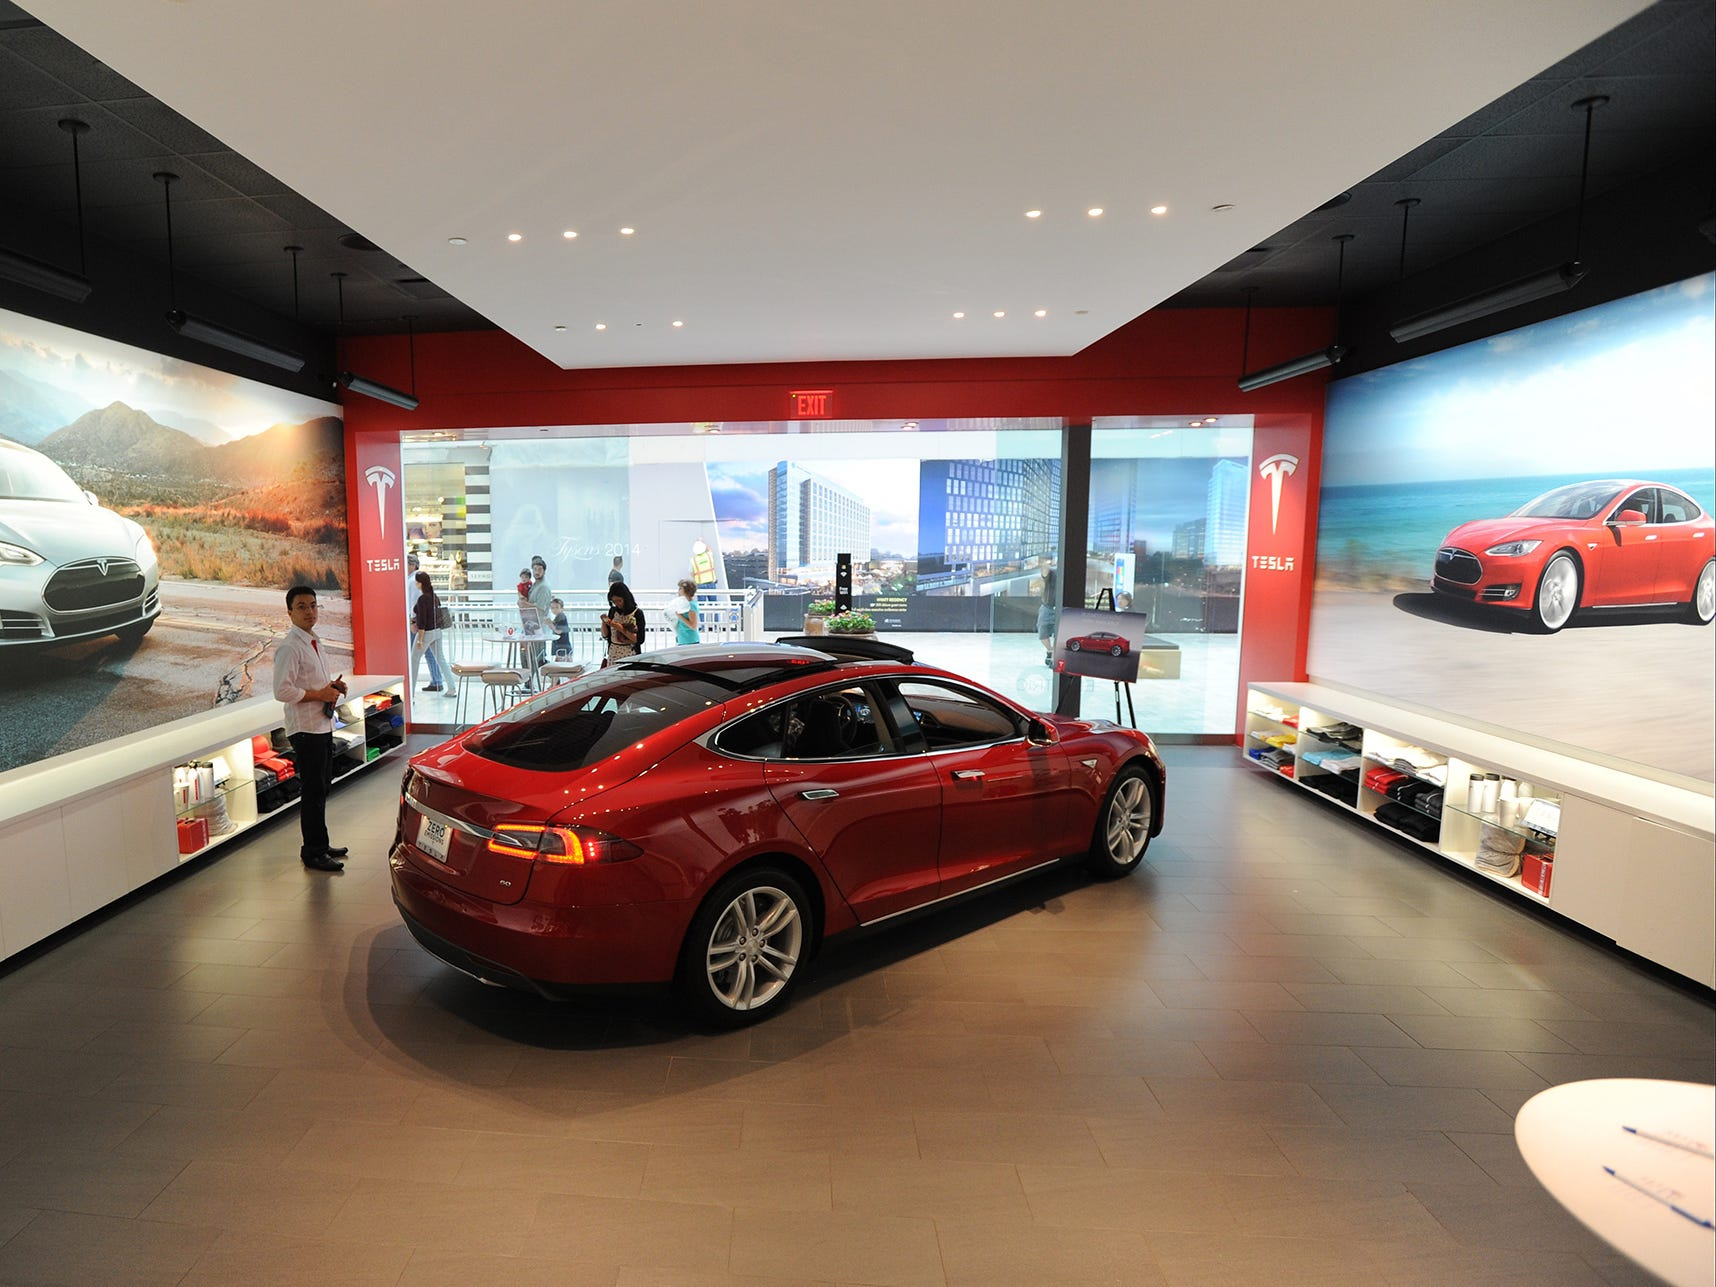 The Tesla Motors showroom in the Tysons Corner Mall in VA. June 12, 2014.